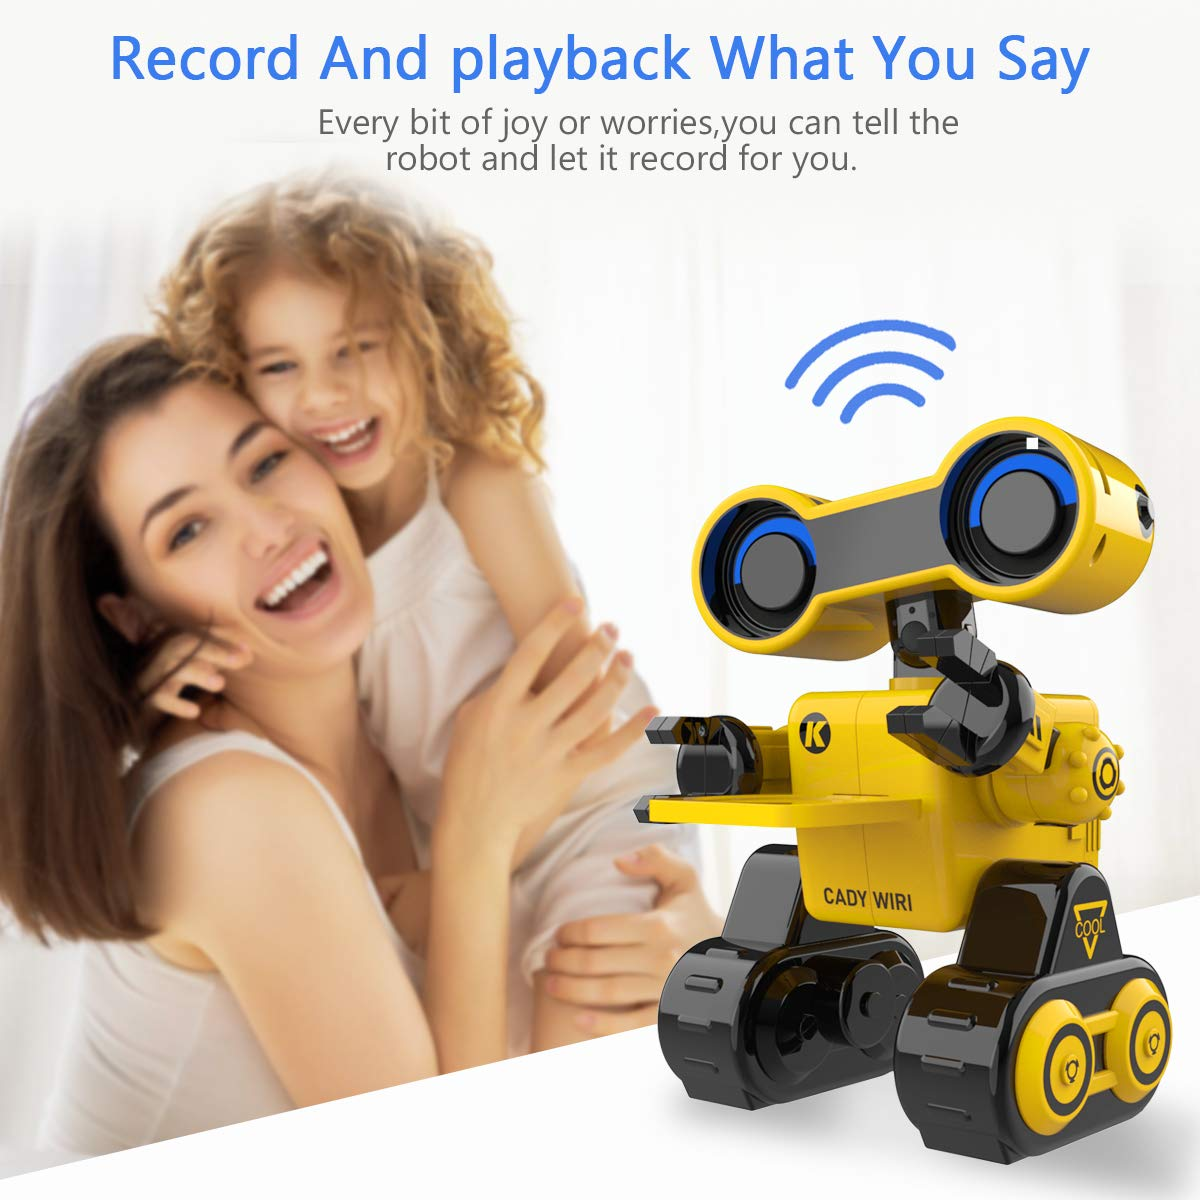 HBUDS Robot Toy Remote Voice Control, Programmable, Touch Sensing STEM Educational Robot Toy with Interactive Feature to Walk, Dance, Sing, Explore, Provide Science Lectures and Send Gifts to Kids - wiihuu